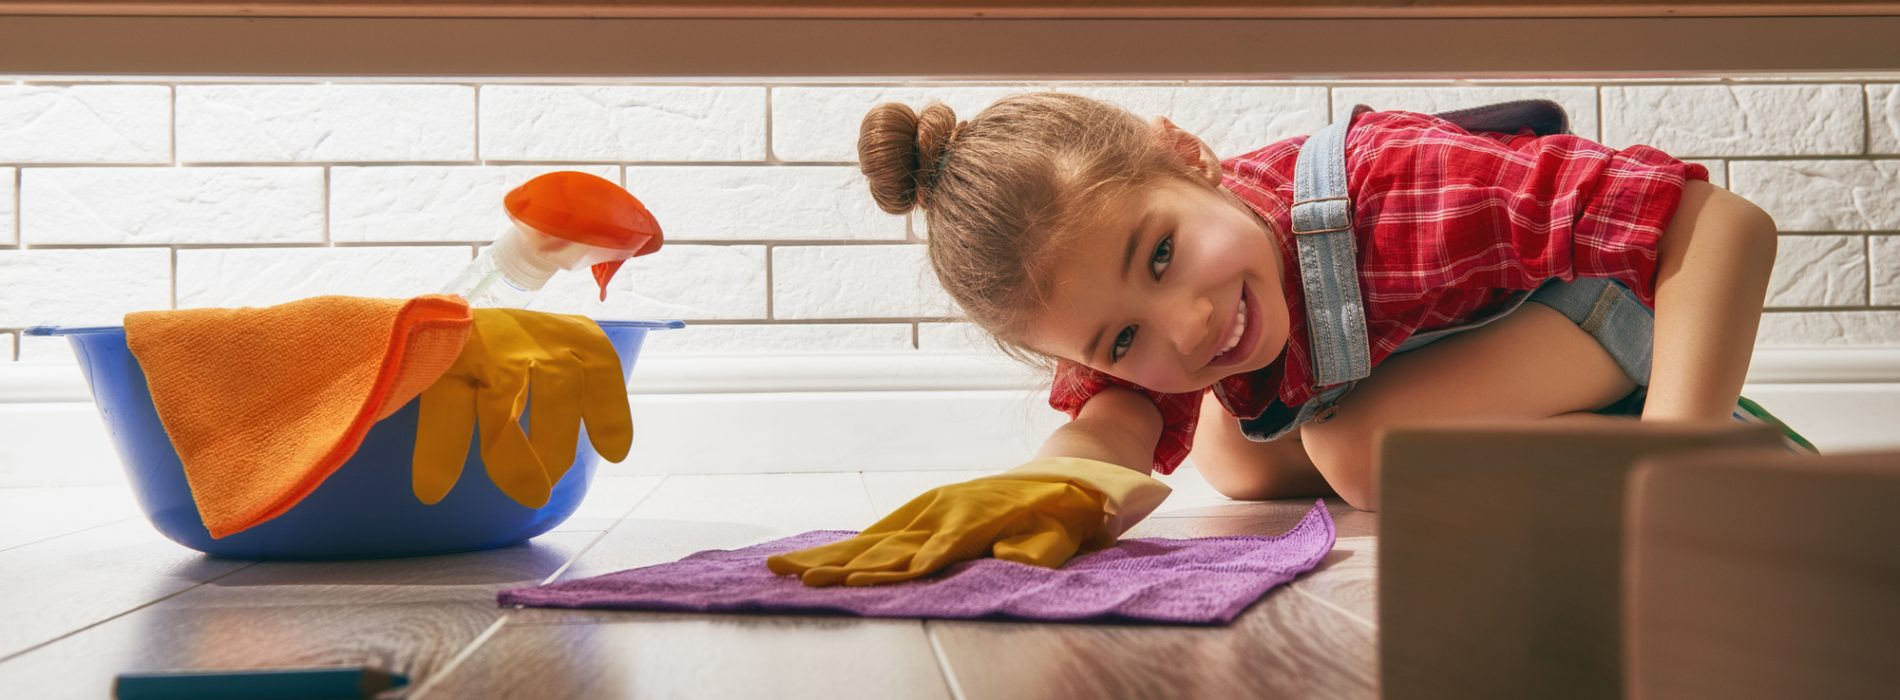 Chores can be family fun!